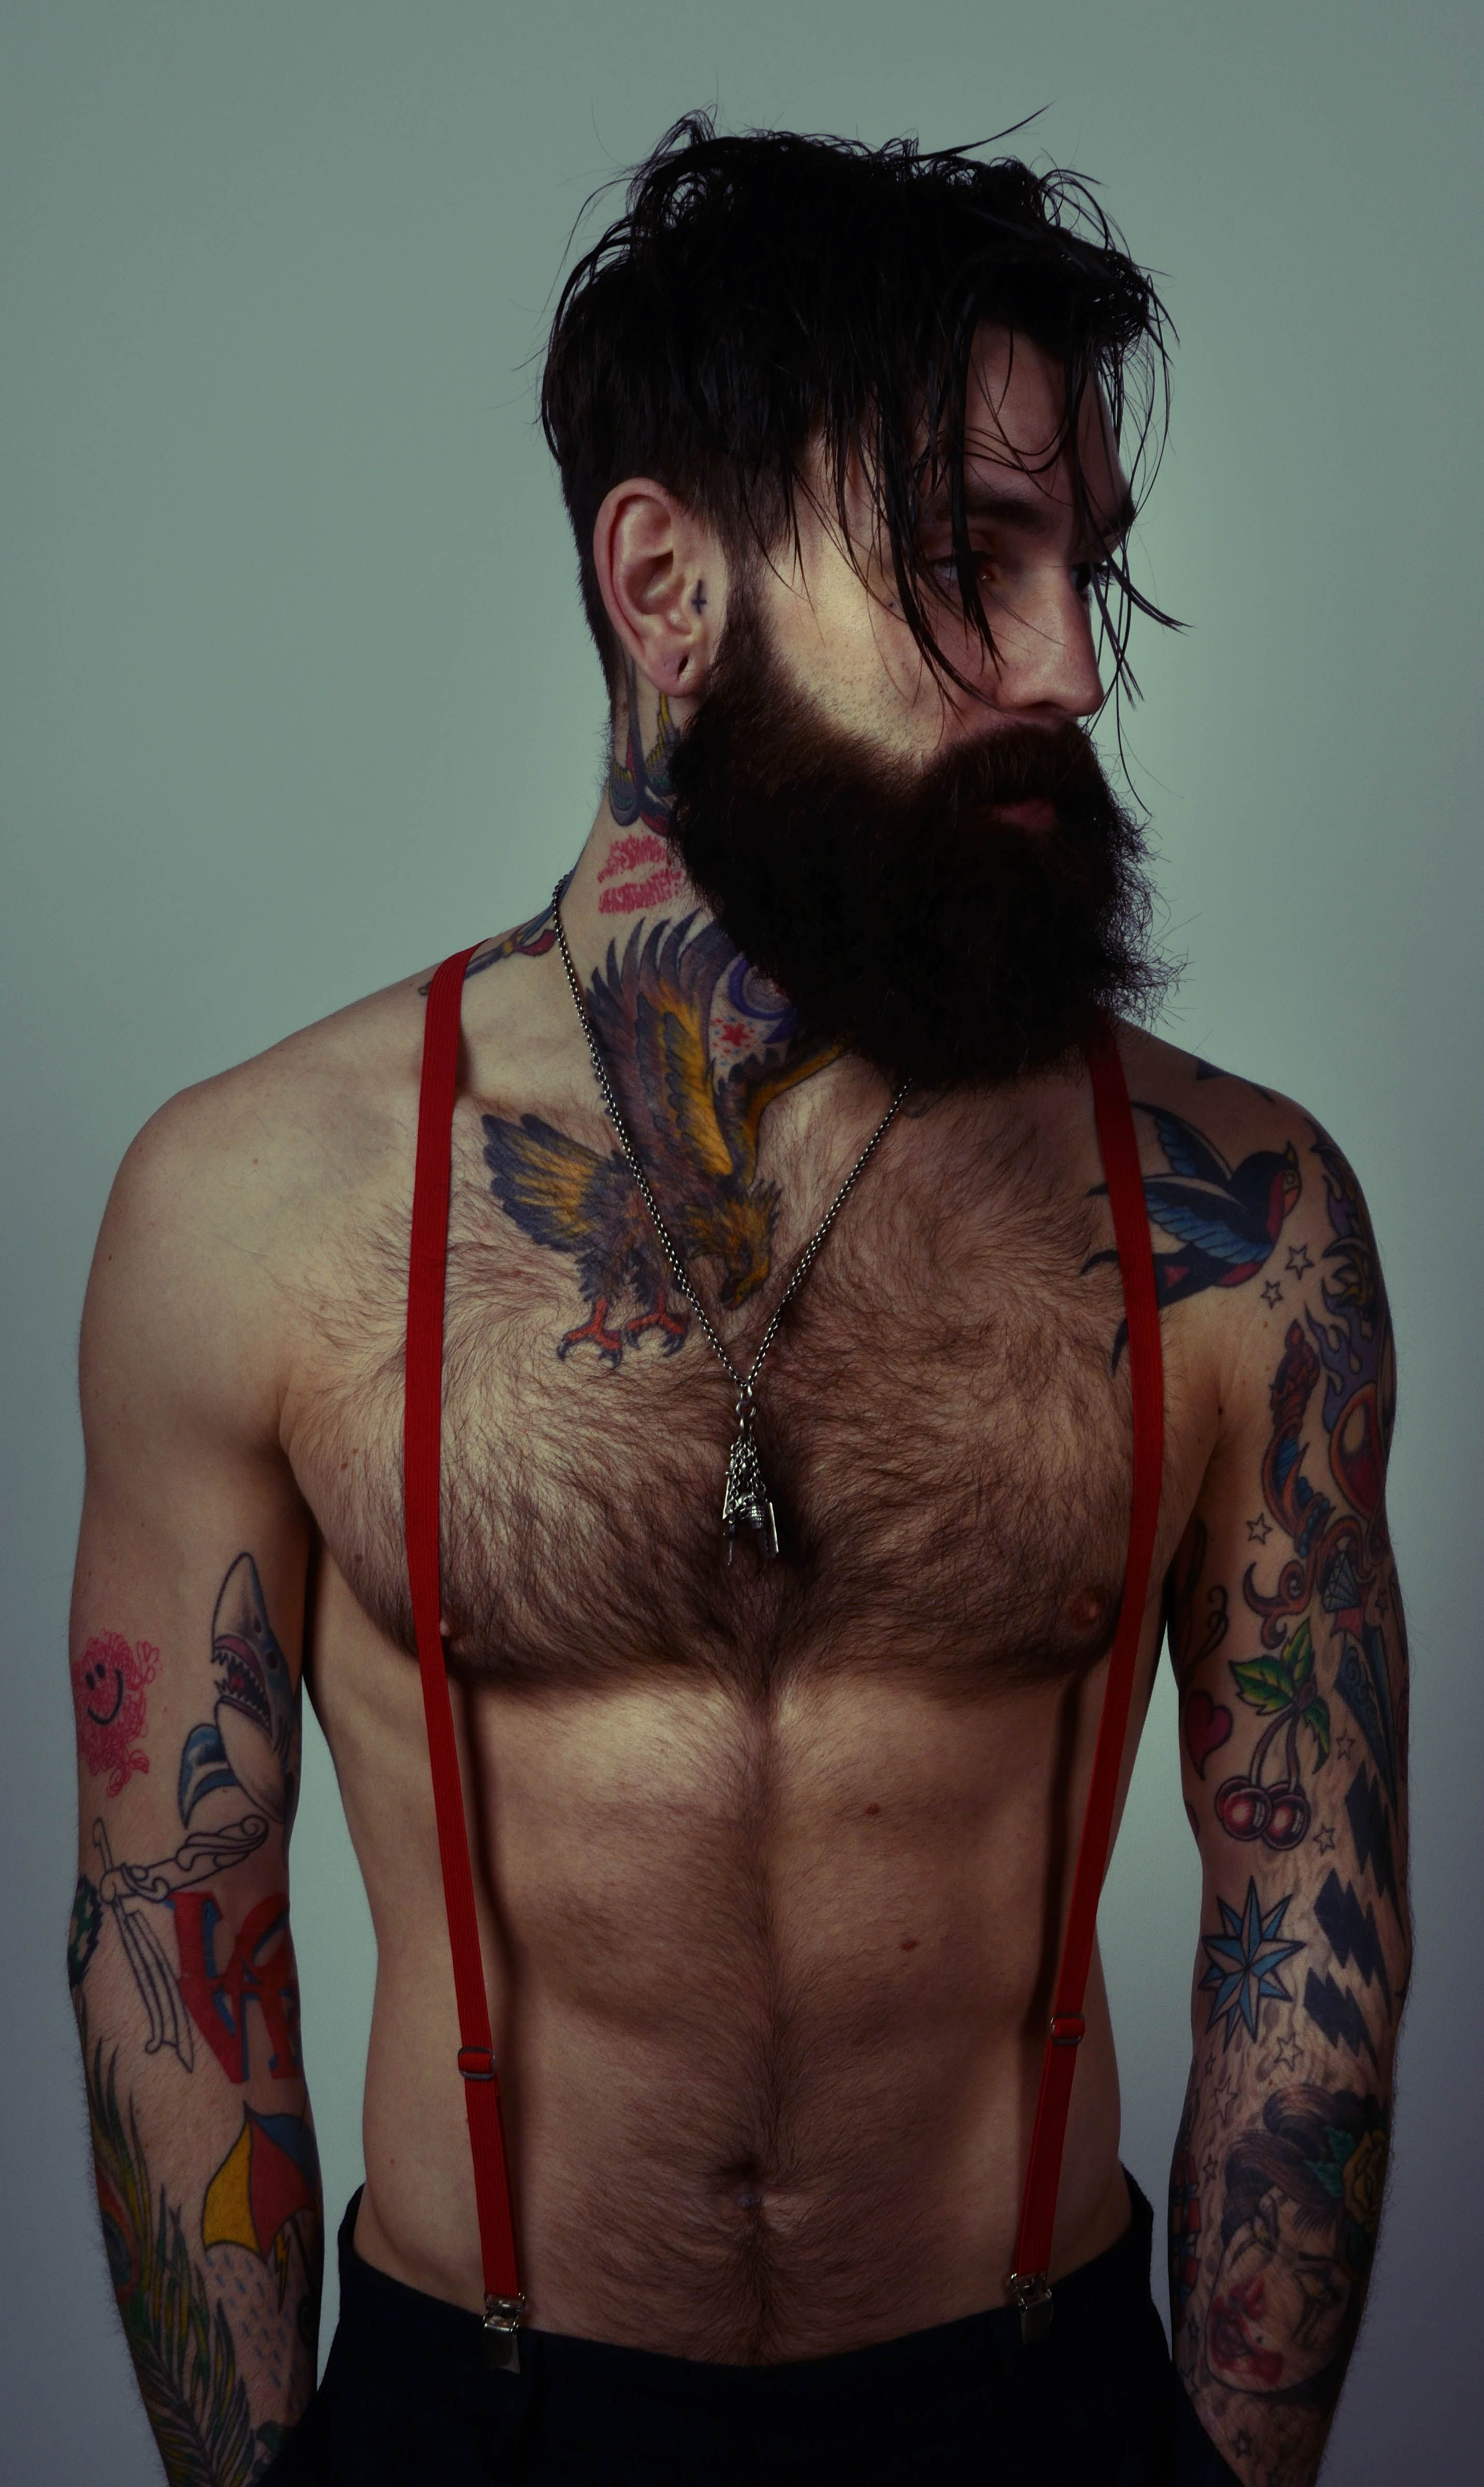 The Top Tattoo Designs Of 2013 According To Pinterest Beard